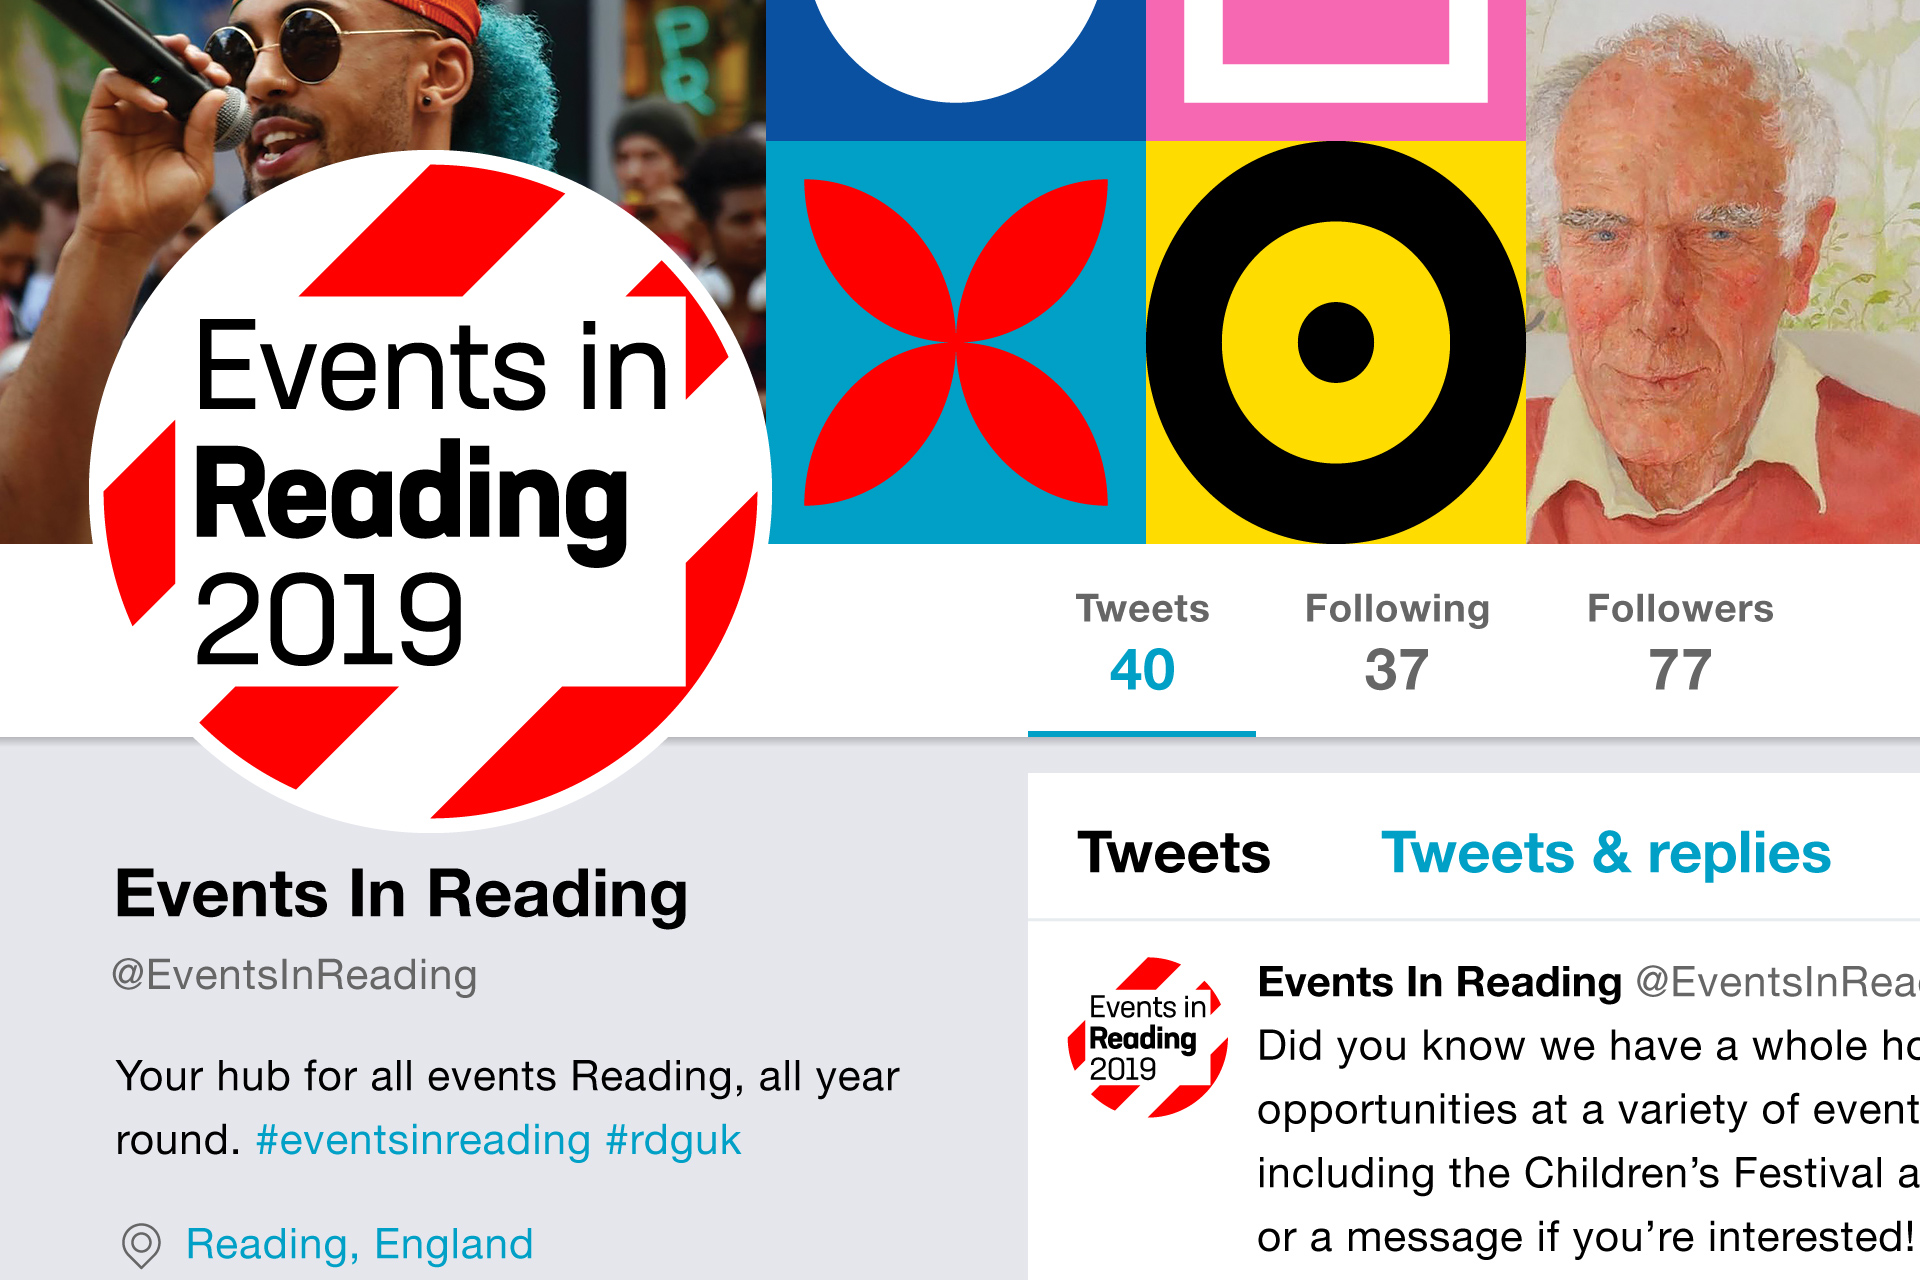 Events in Reading Twitter